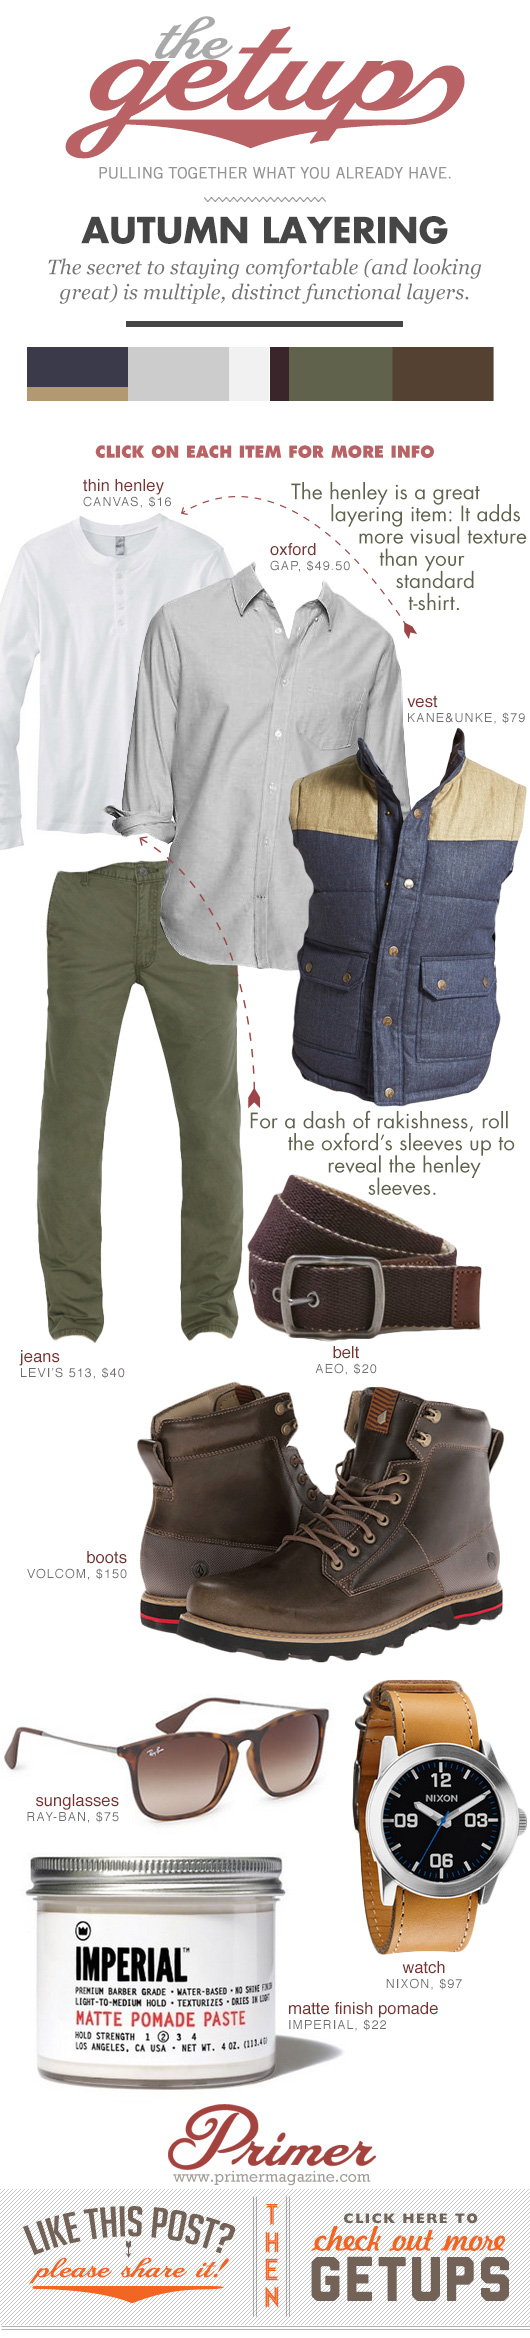 Getup Autumn Layering - Vest, button up shirt, green pants, chunky boots